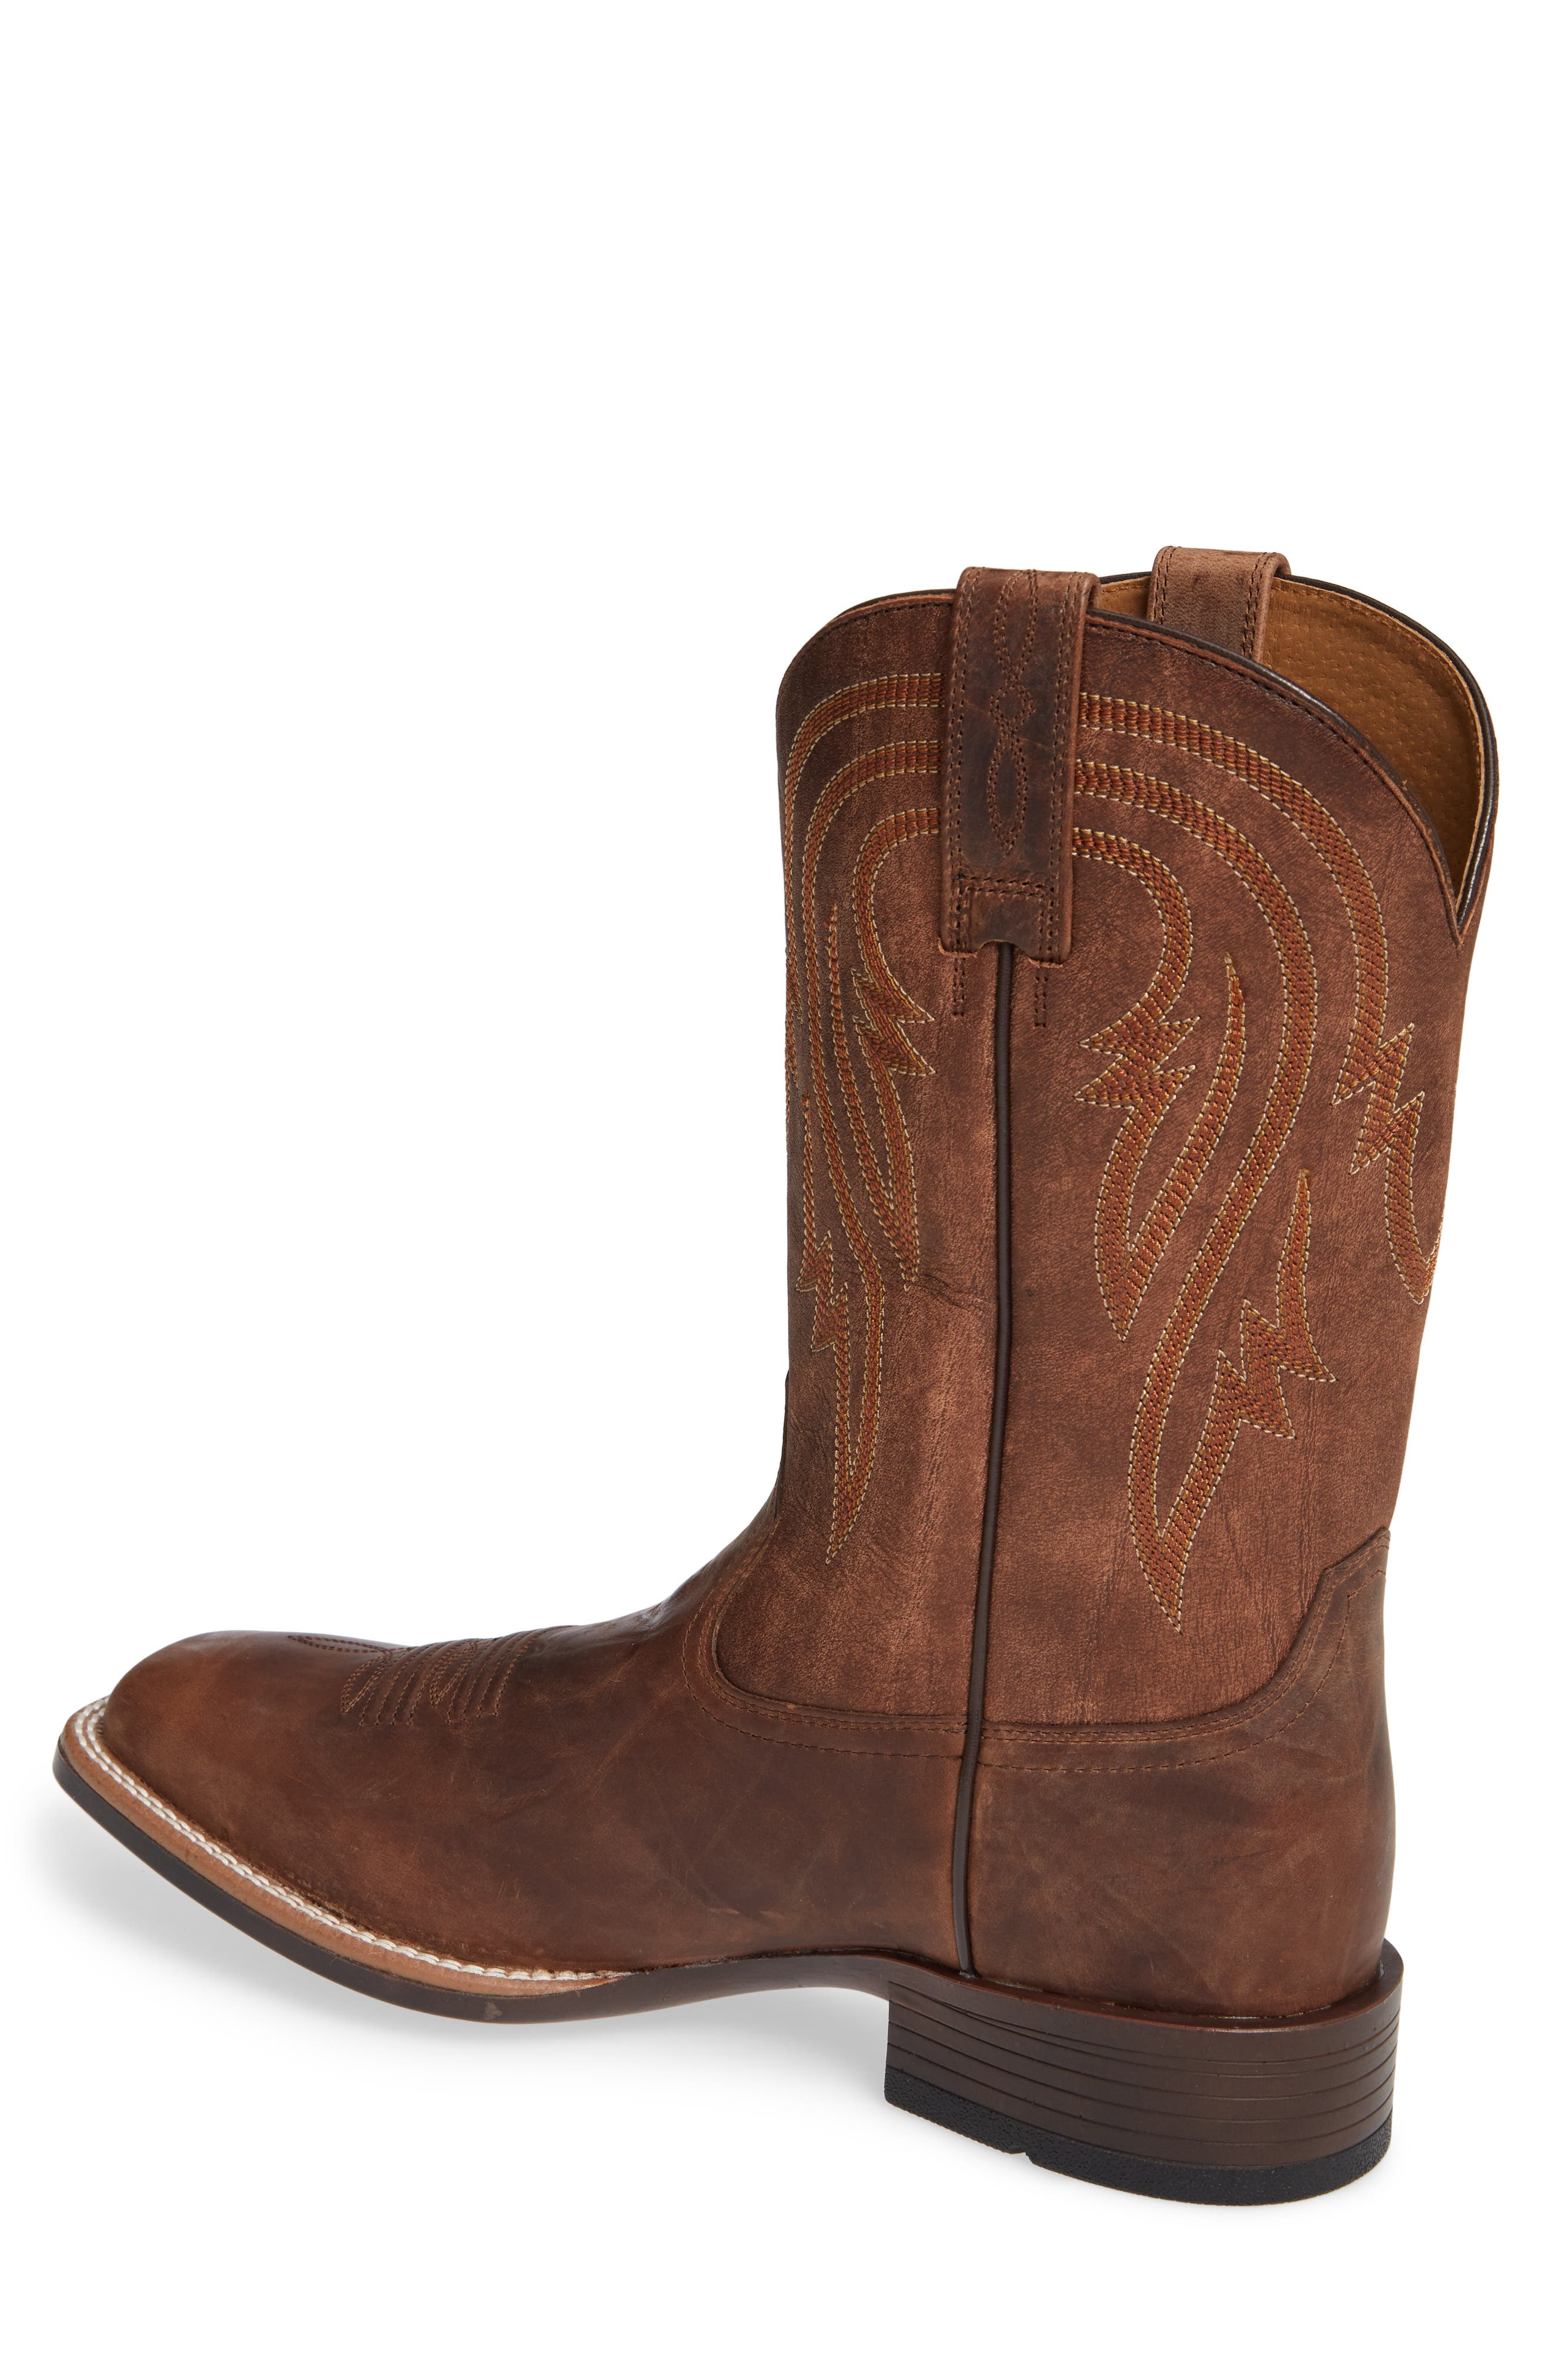 ARIAT, Plano Cowboy Boot, Alternate thumbnail 2, color, TANNIN/ TACK ROM LEATHER